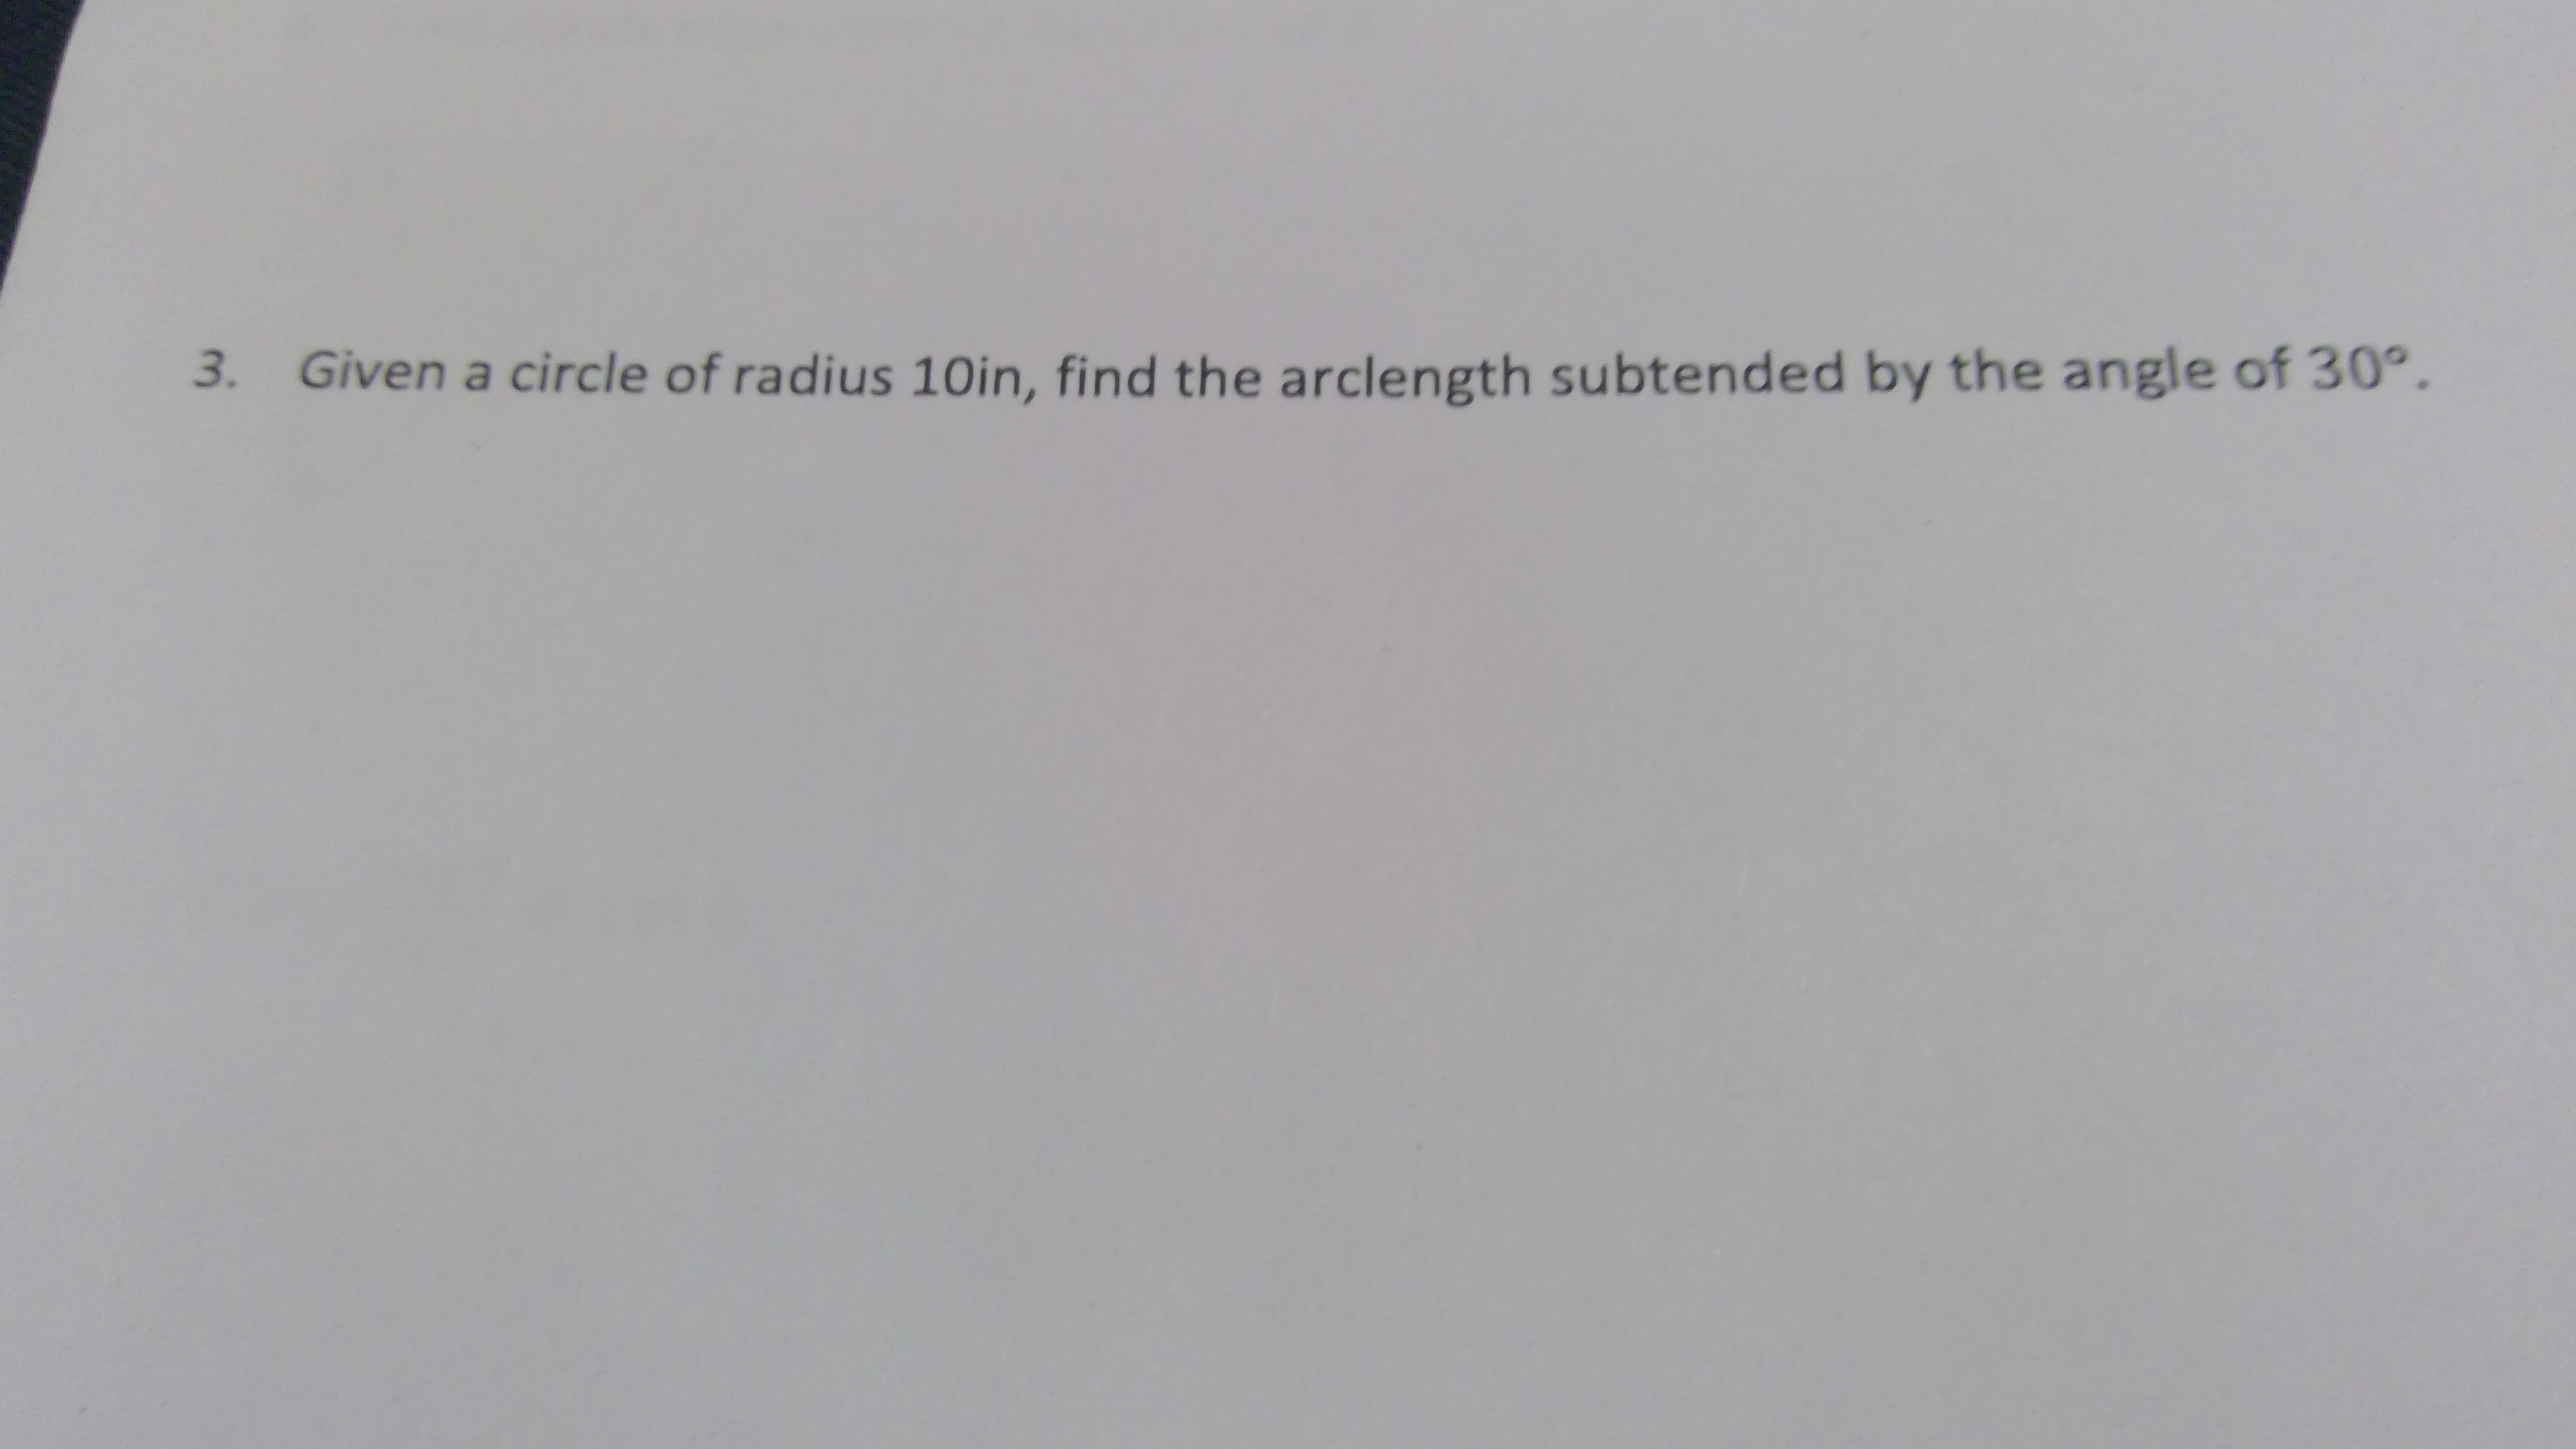 Given a circle of radius 10in, find the arclength subtended by the angle of 30°. 3.